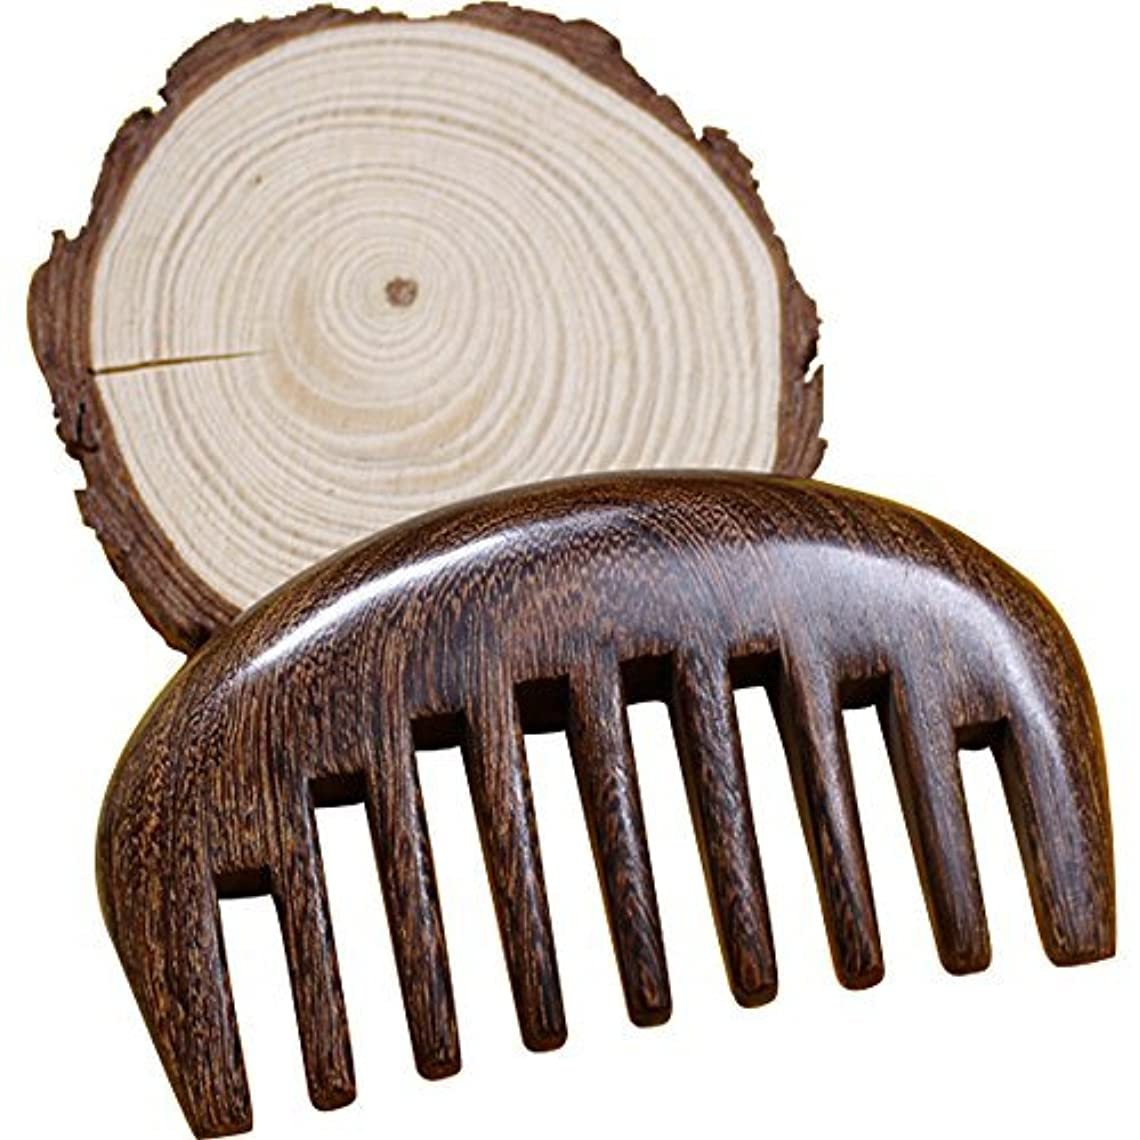 鋸歯状湿気の多いペンWood comb Wooden wide tooth hair comb detangler brush -Anti Static Sandalwood Scent handmad with gift package...